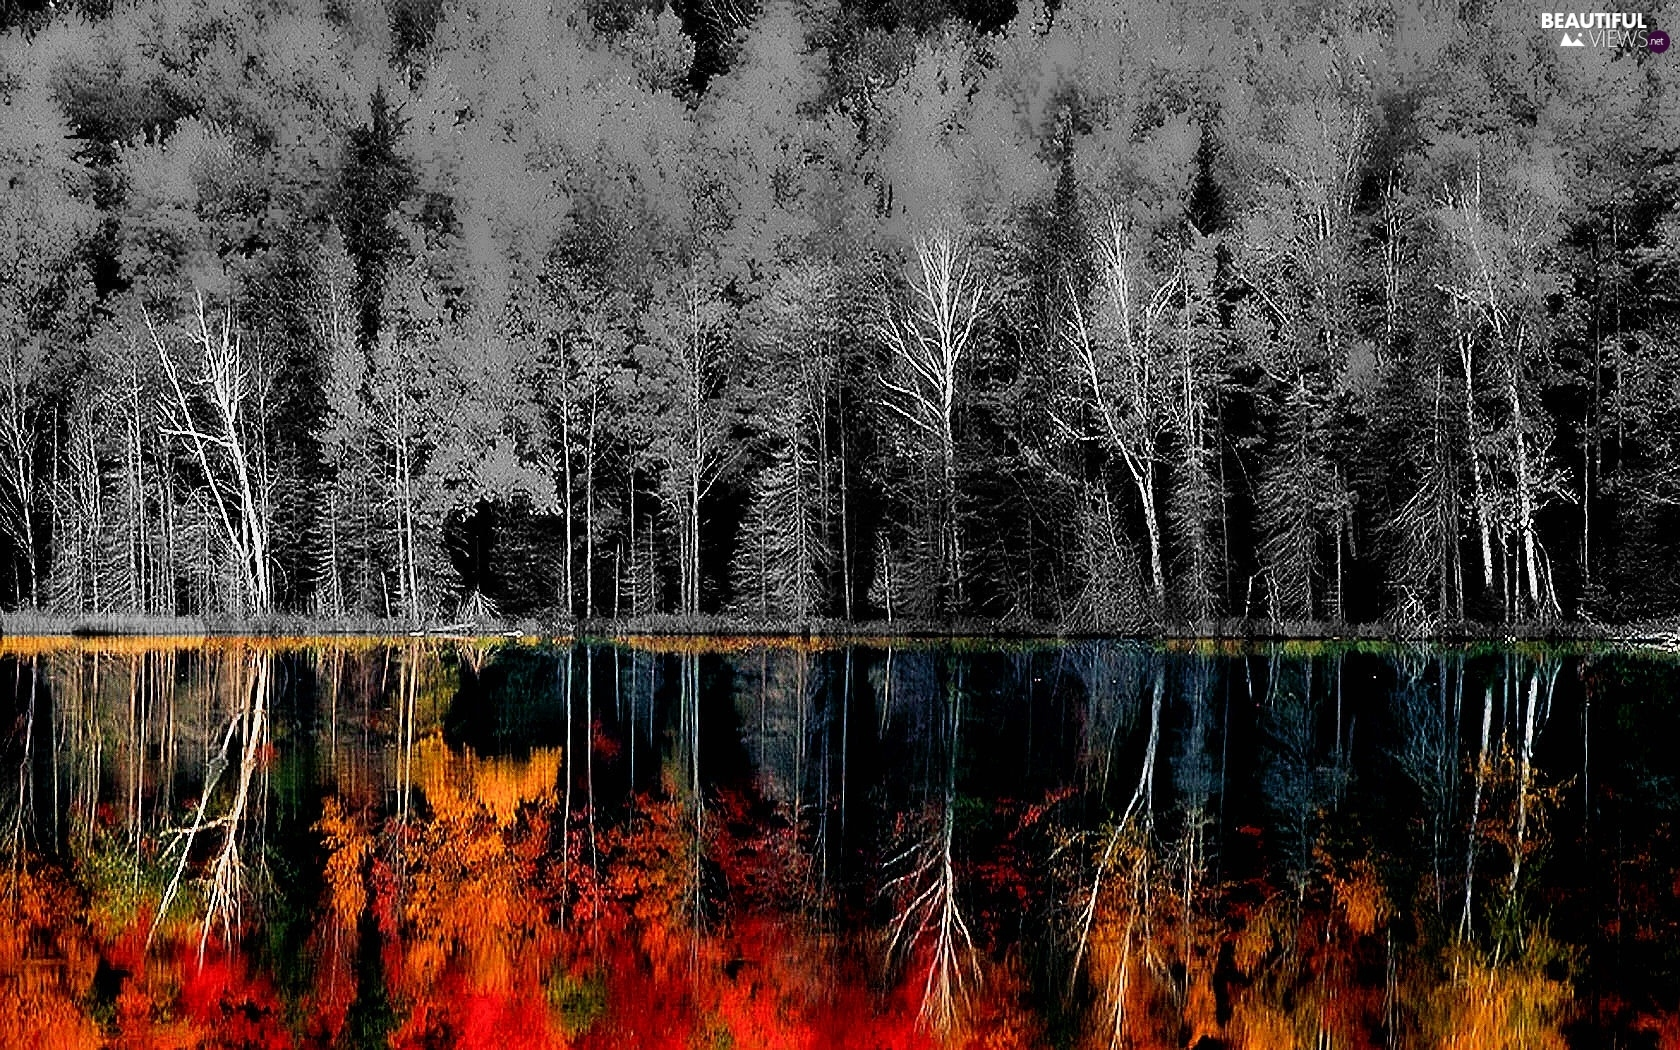 trees, color, reflection, viewes